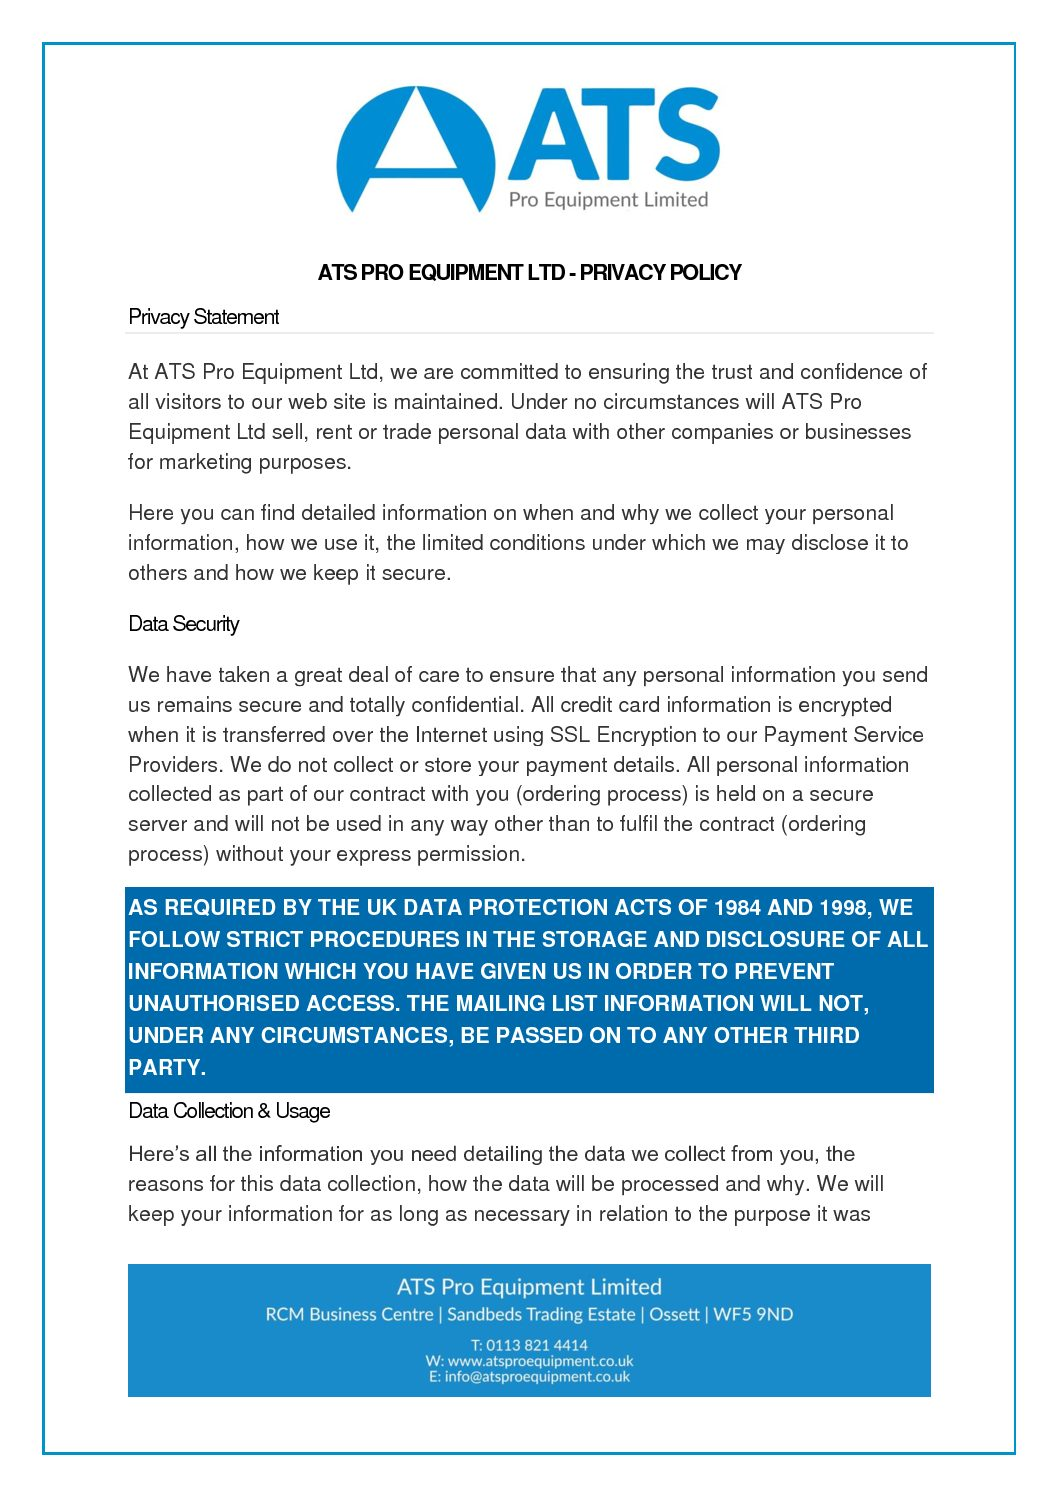 ATS-Pro-Equipment-Limited-Privacy-Policy-pdf